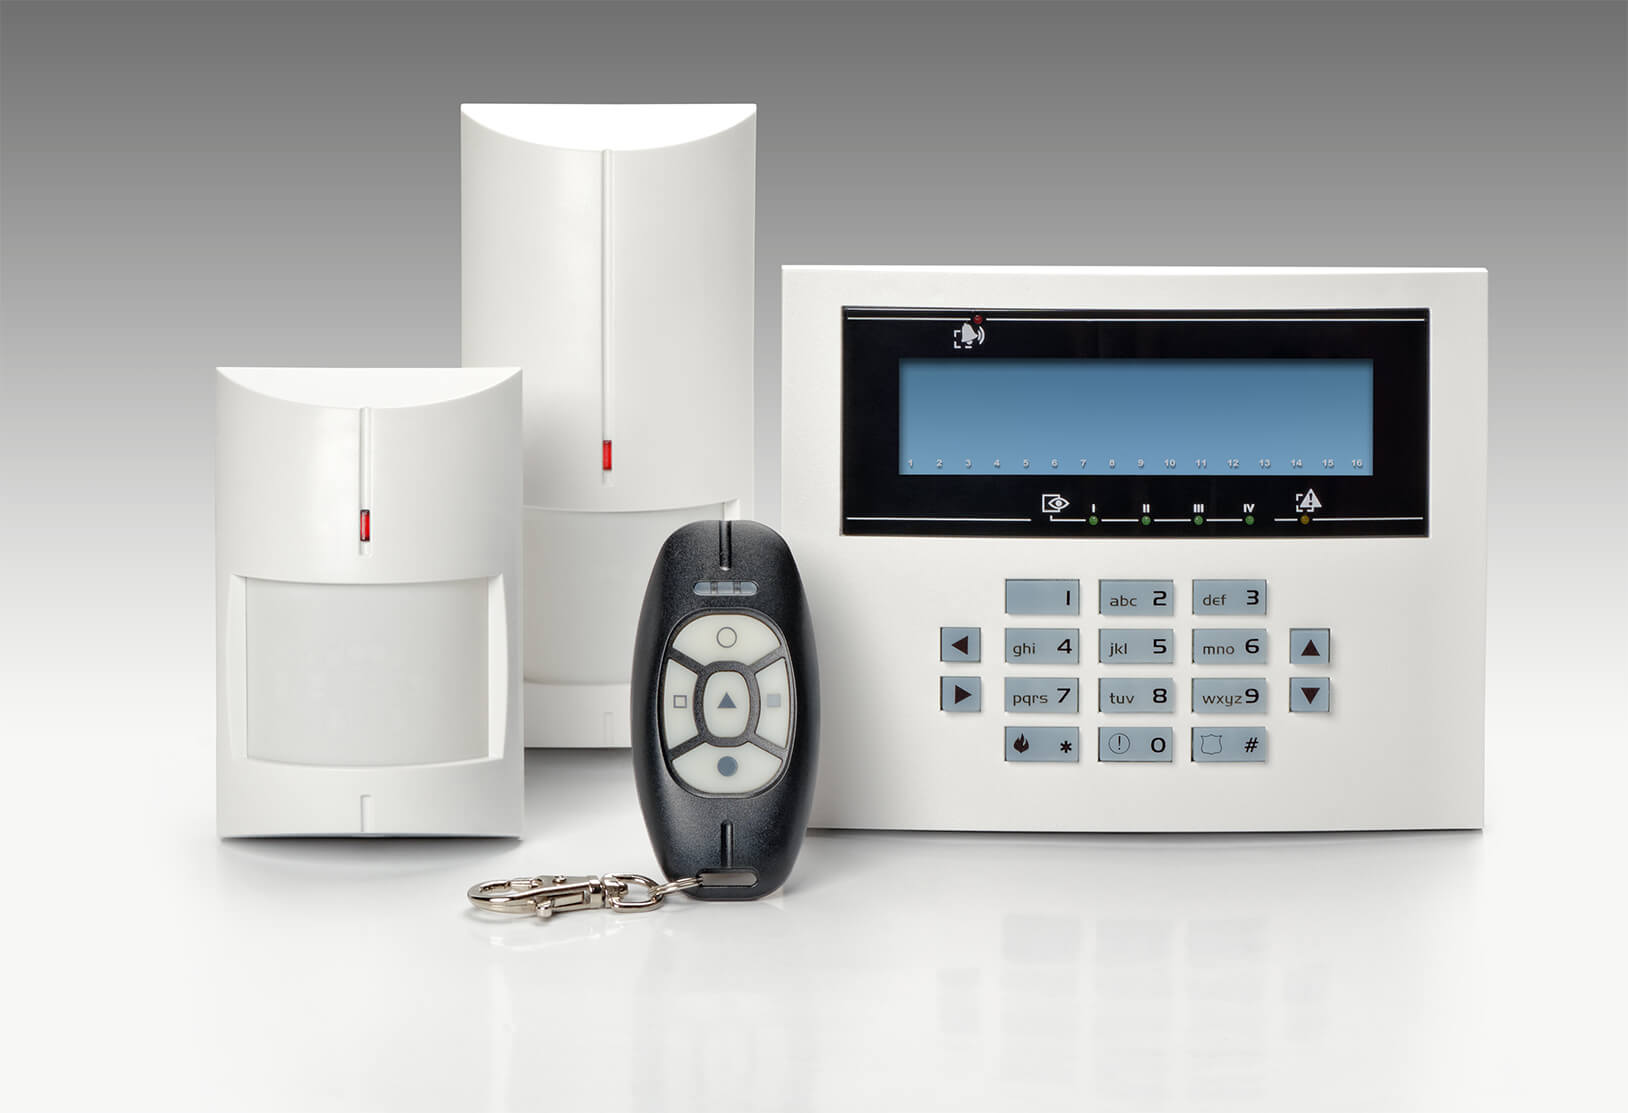 Commercial Burglar Alarms For Business in Crouch End N8  - Local Crouch End N8 burglar alarm company.Call 02078872244 - Dedicated to Safety & Security. Companies, shops and homes ..